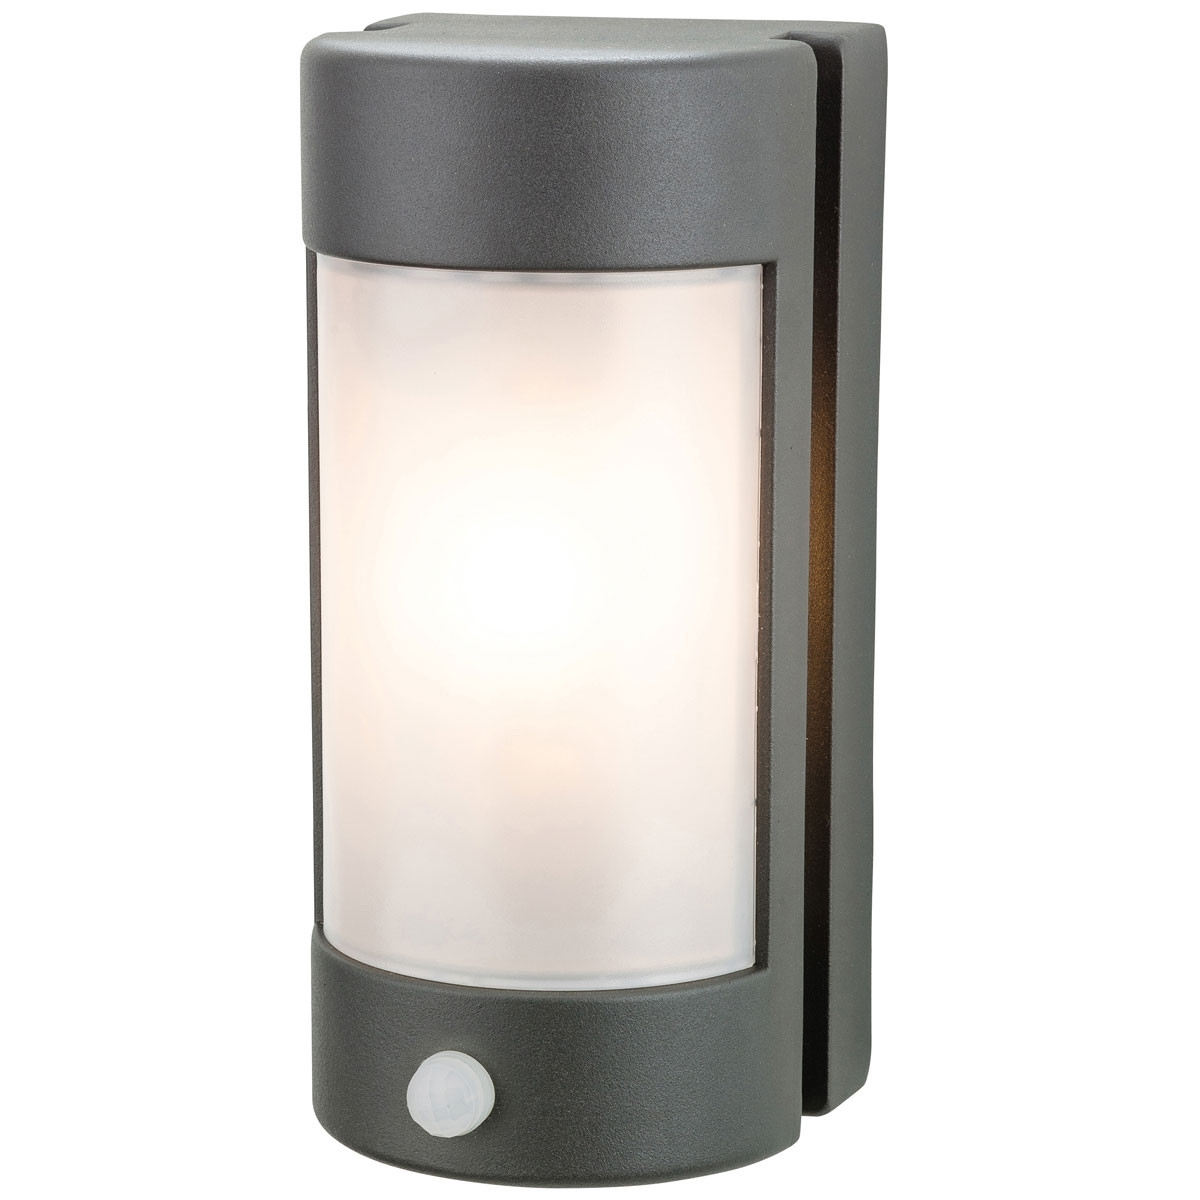 Outdoor Wall Lights With Pir With Newest Diecast Aluminium Graphite Outdoor Wall Light With Pir (View 16 of 20)